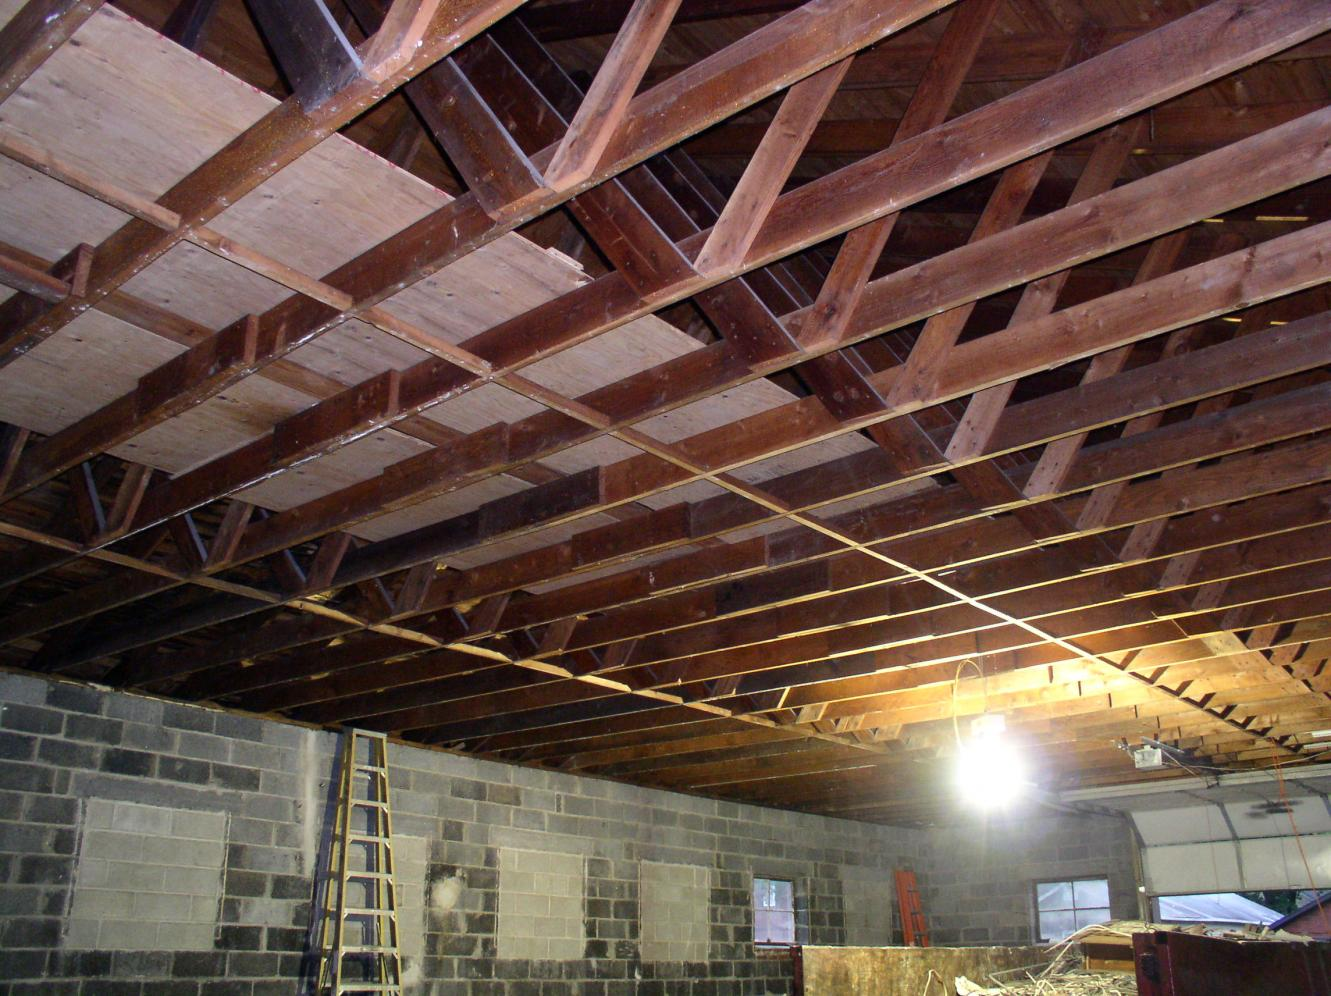 Truss Experts/attic Support & Truss Experts/attic Support - Framing - Contractor Talk